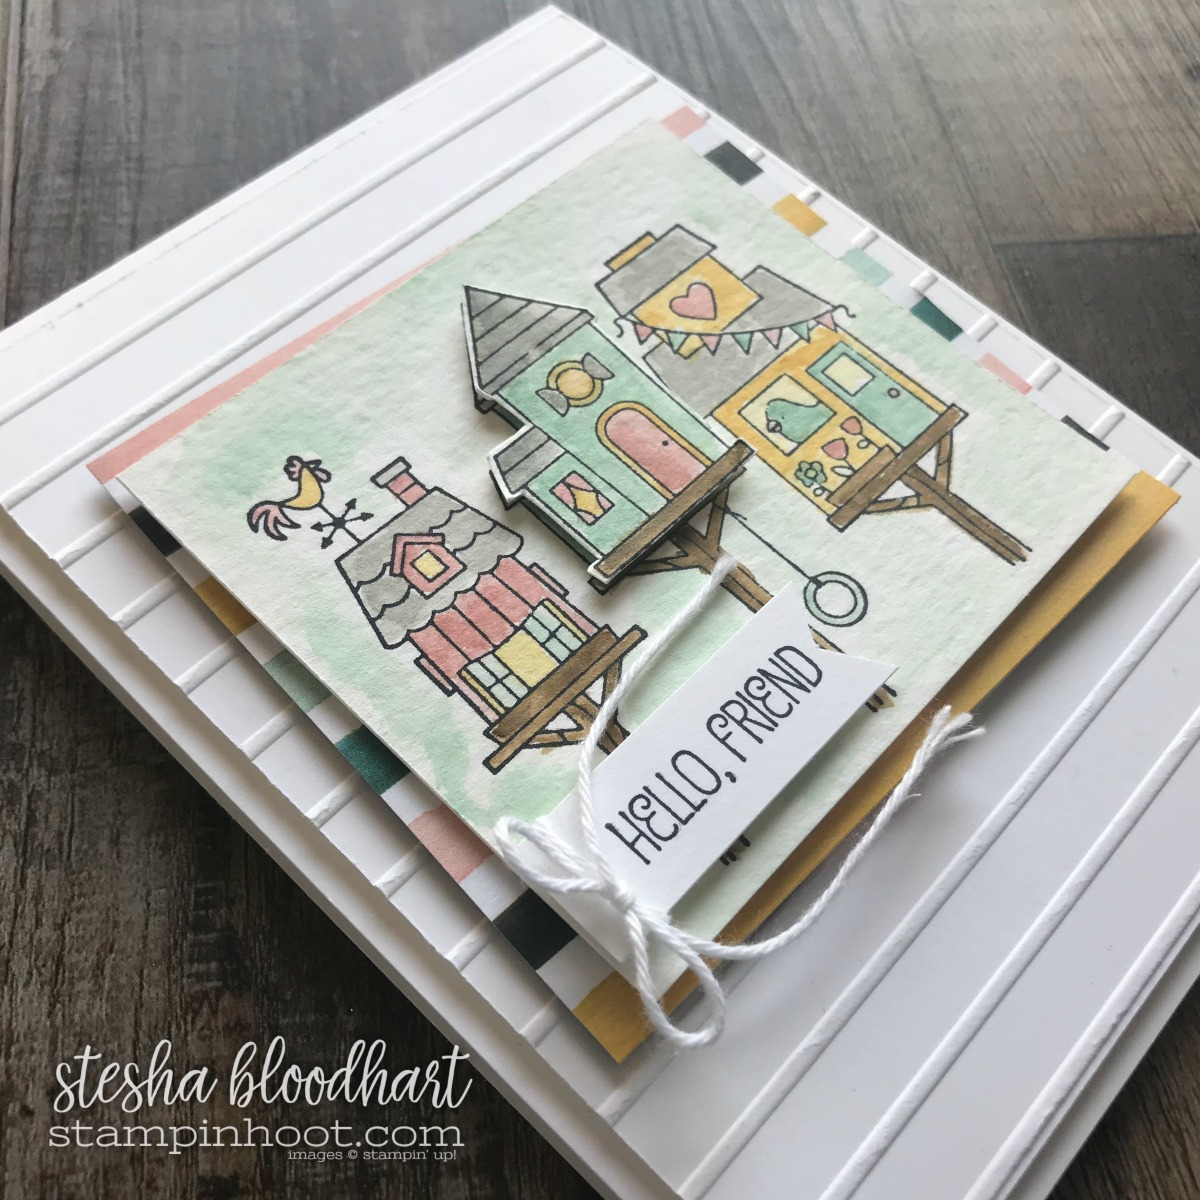 lying Home Stamp Set by Stampin' Up! from the 2018 Occasions Catalog. Created by Stesha Bloodhart, Stampin' Hoot! Pals Blog Hop - Case the Catty #steshabloodhart #stampinhoot